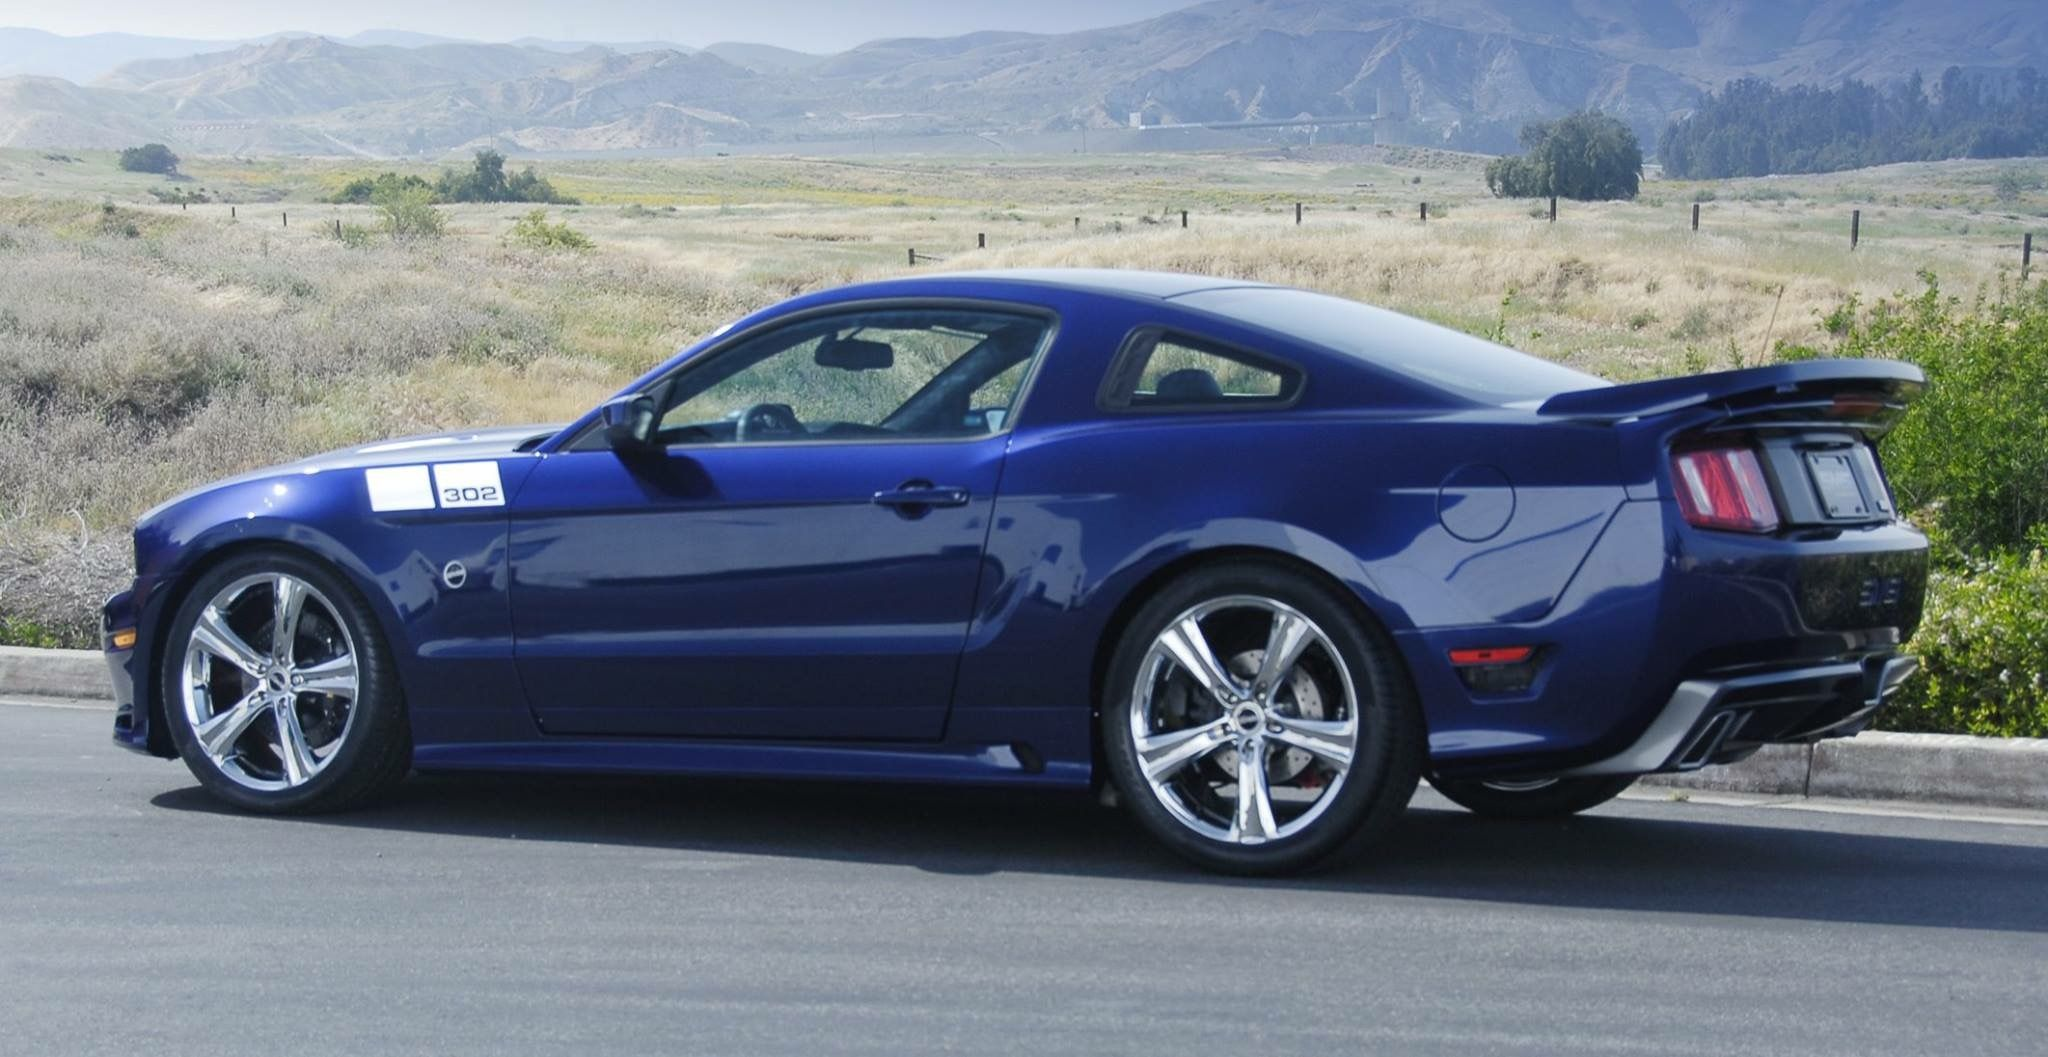 Mustang Saleen 2010 Coches Chulos Autos Coches